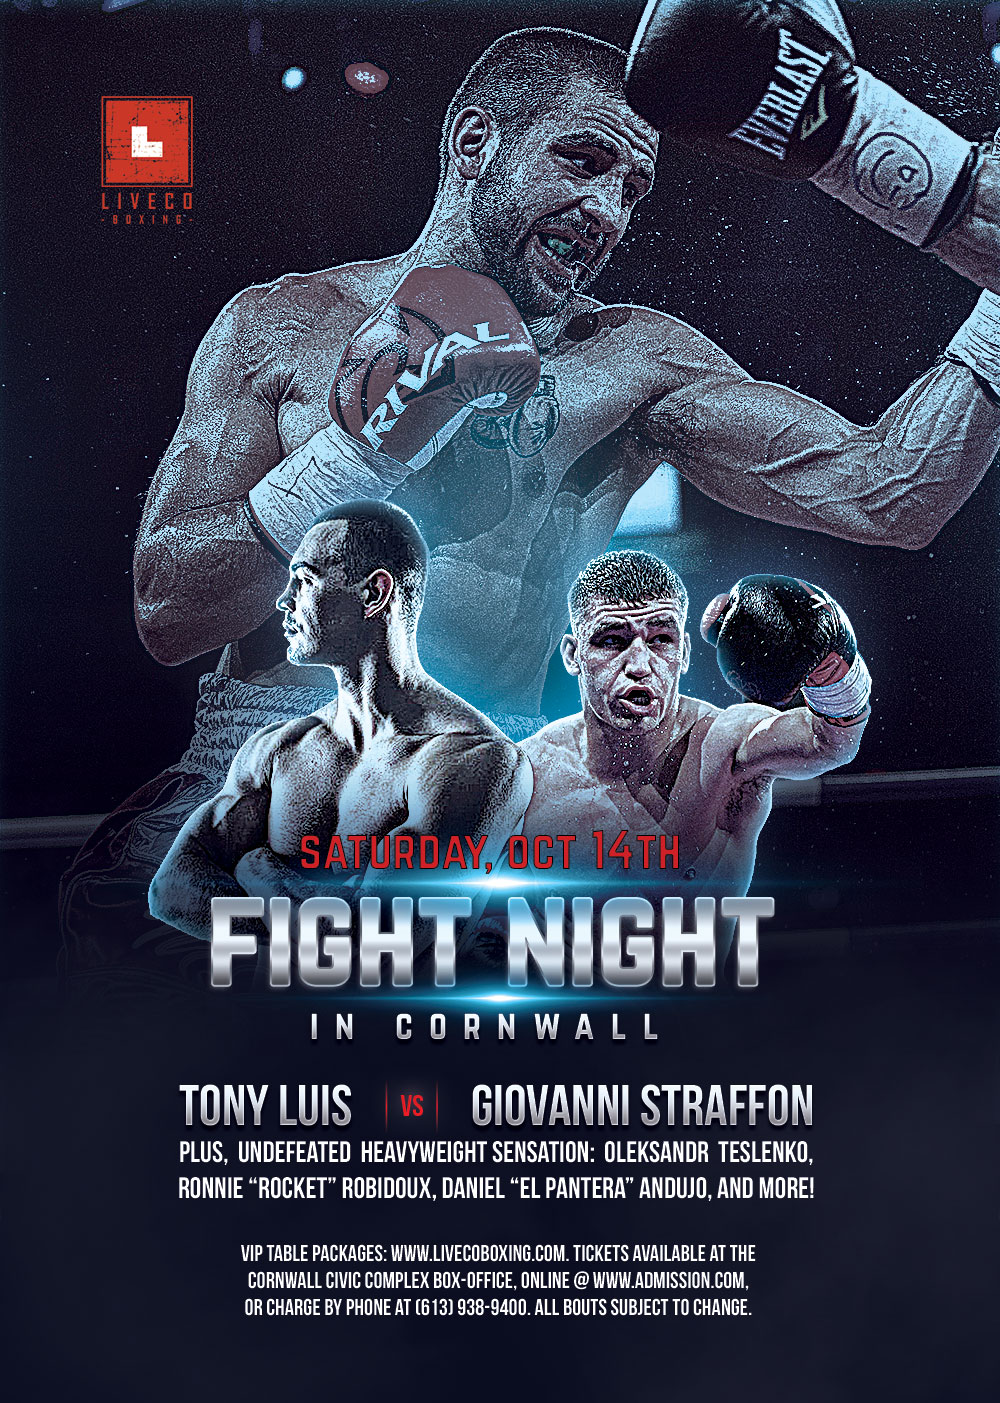 Liveco-Boxing-Tony-Luis-Giovanni-Straffon-Fight-Poster